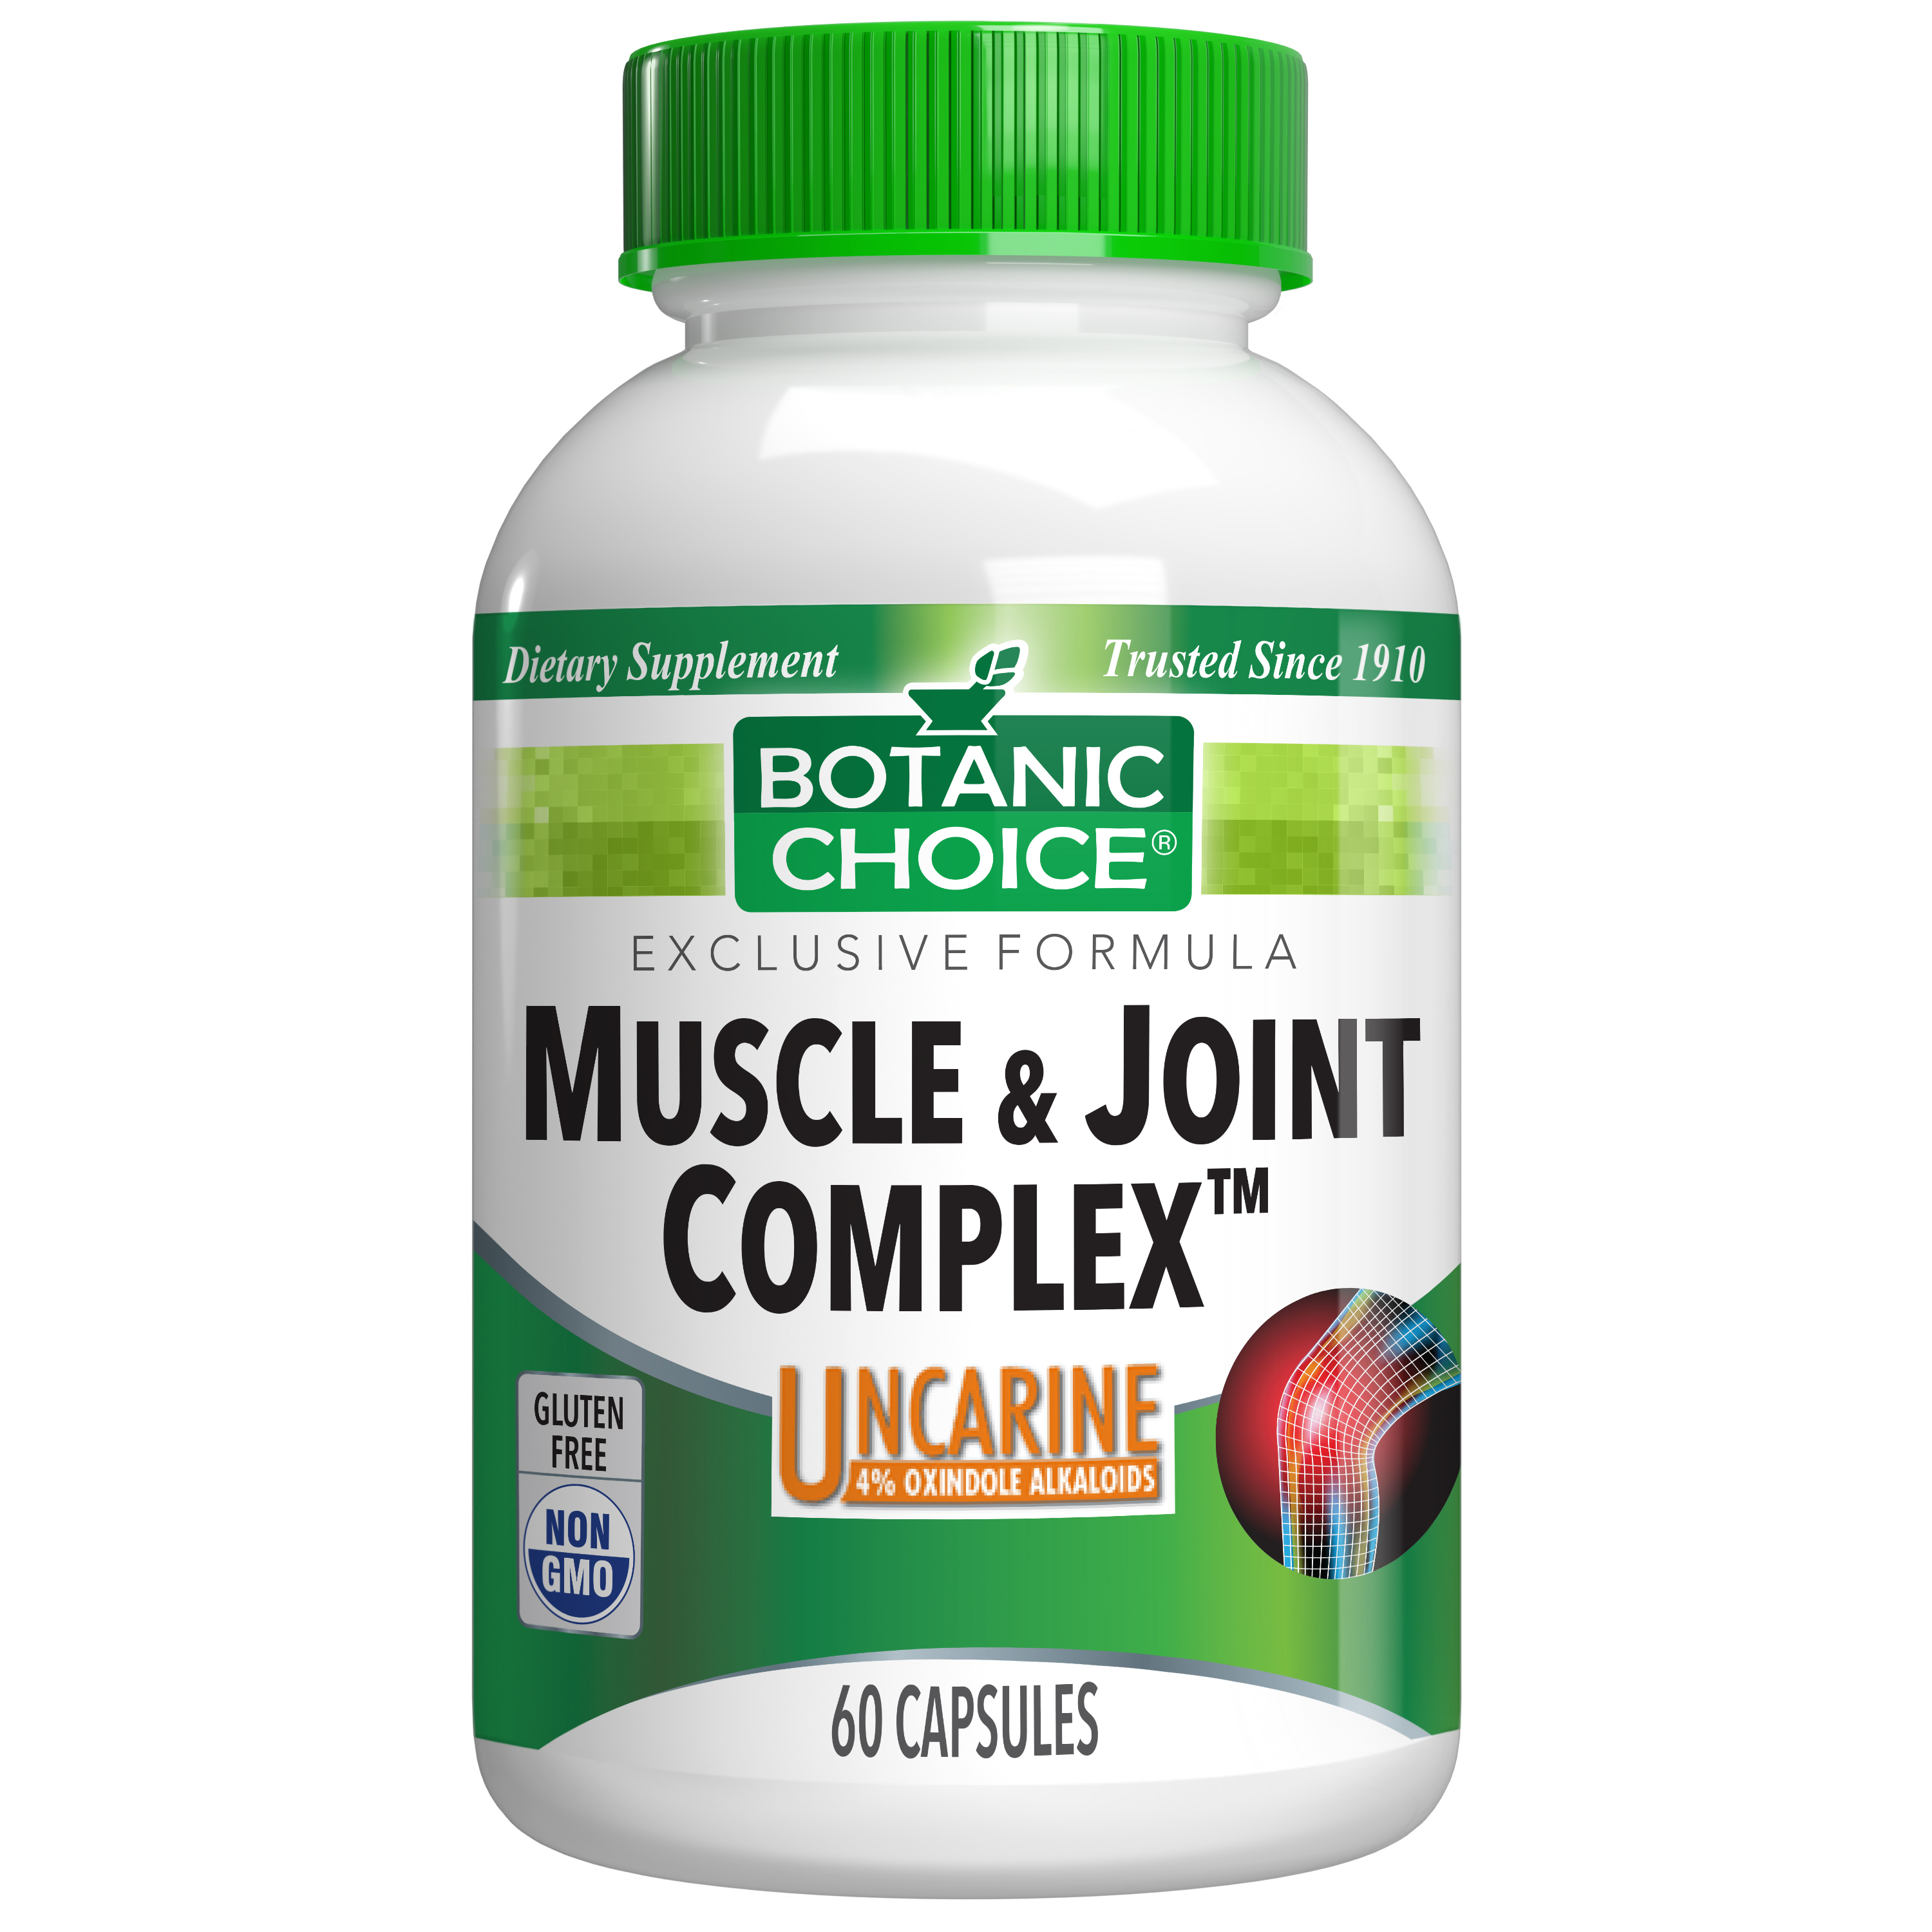 Botanic Choice Muscle & Joint Complex - Joint Support Supplement - 60 Capsules